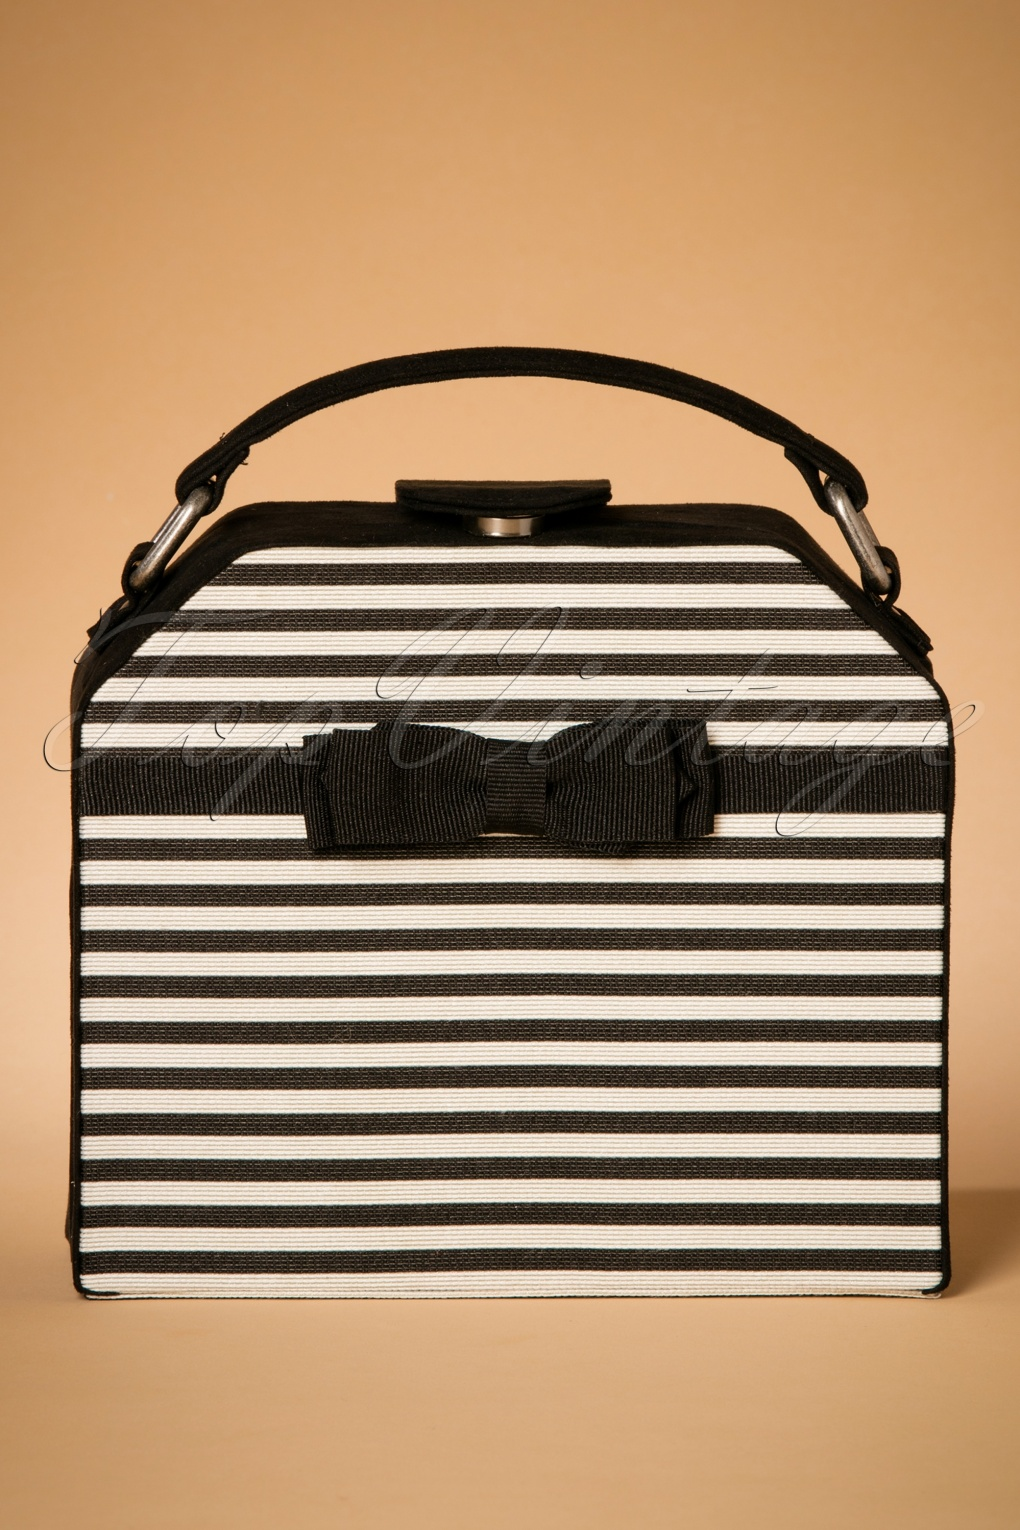 Vintage & Retro Handbags, Purses, Wallets, Bags 60s Tampa Handbag in Black and White £48.80 AT vintagedancer.com